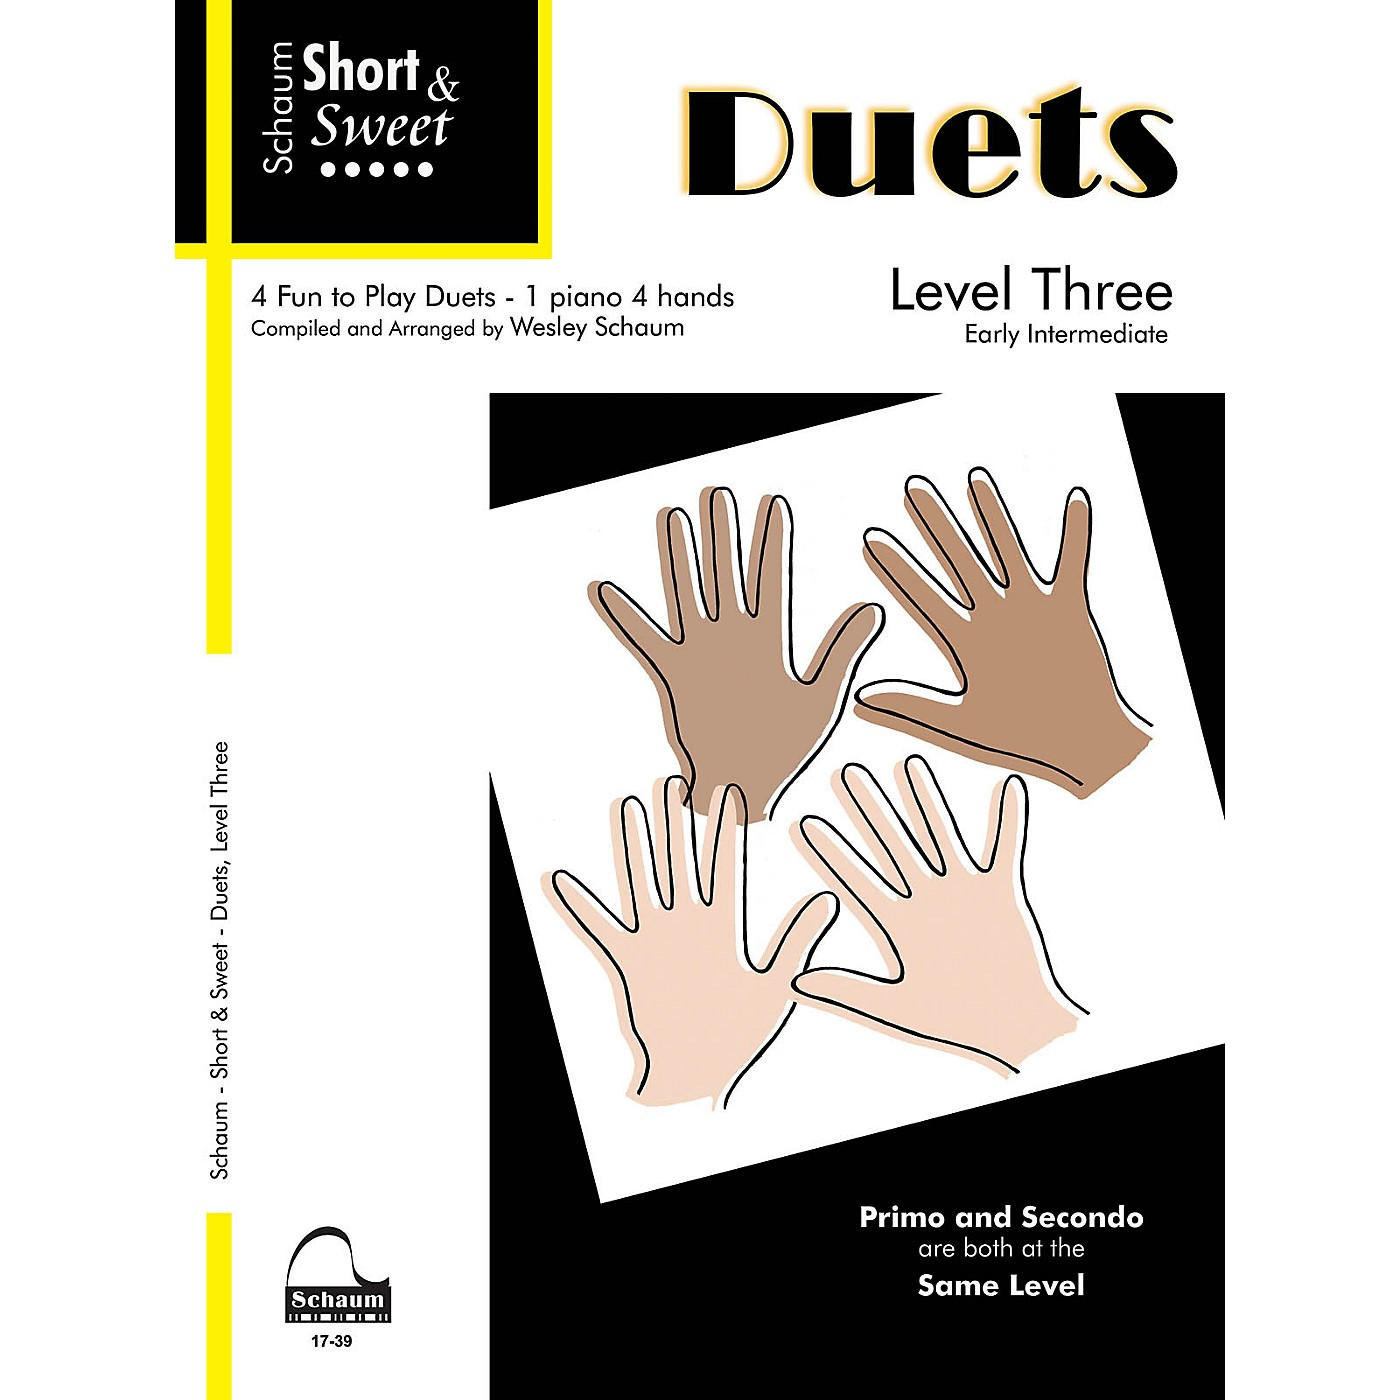 SCHAUM Short & Sweet: Duets Educational Piano Book (Level Early Inter) thumbnail